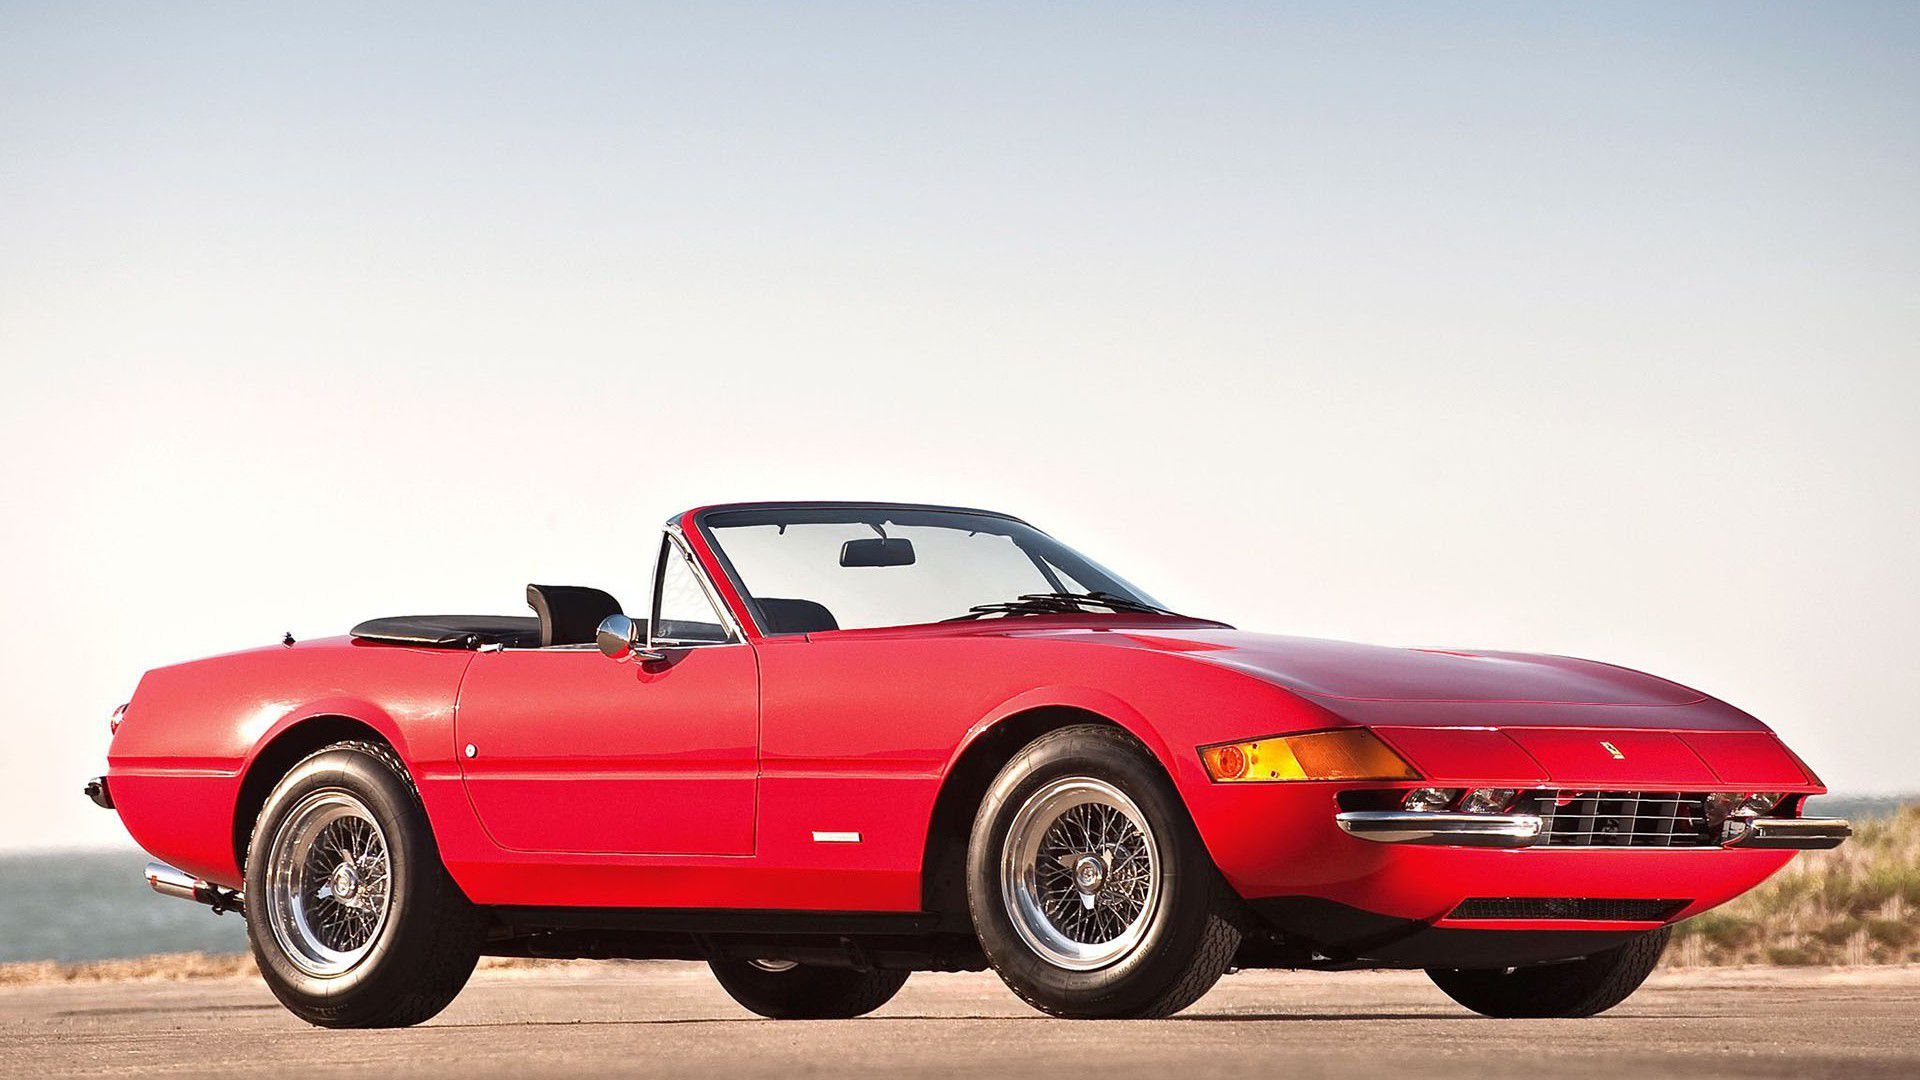 Ferrari 365 Daytona 187 Definitive List Cars